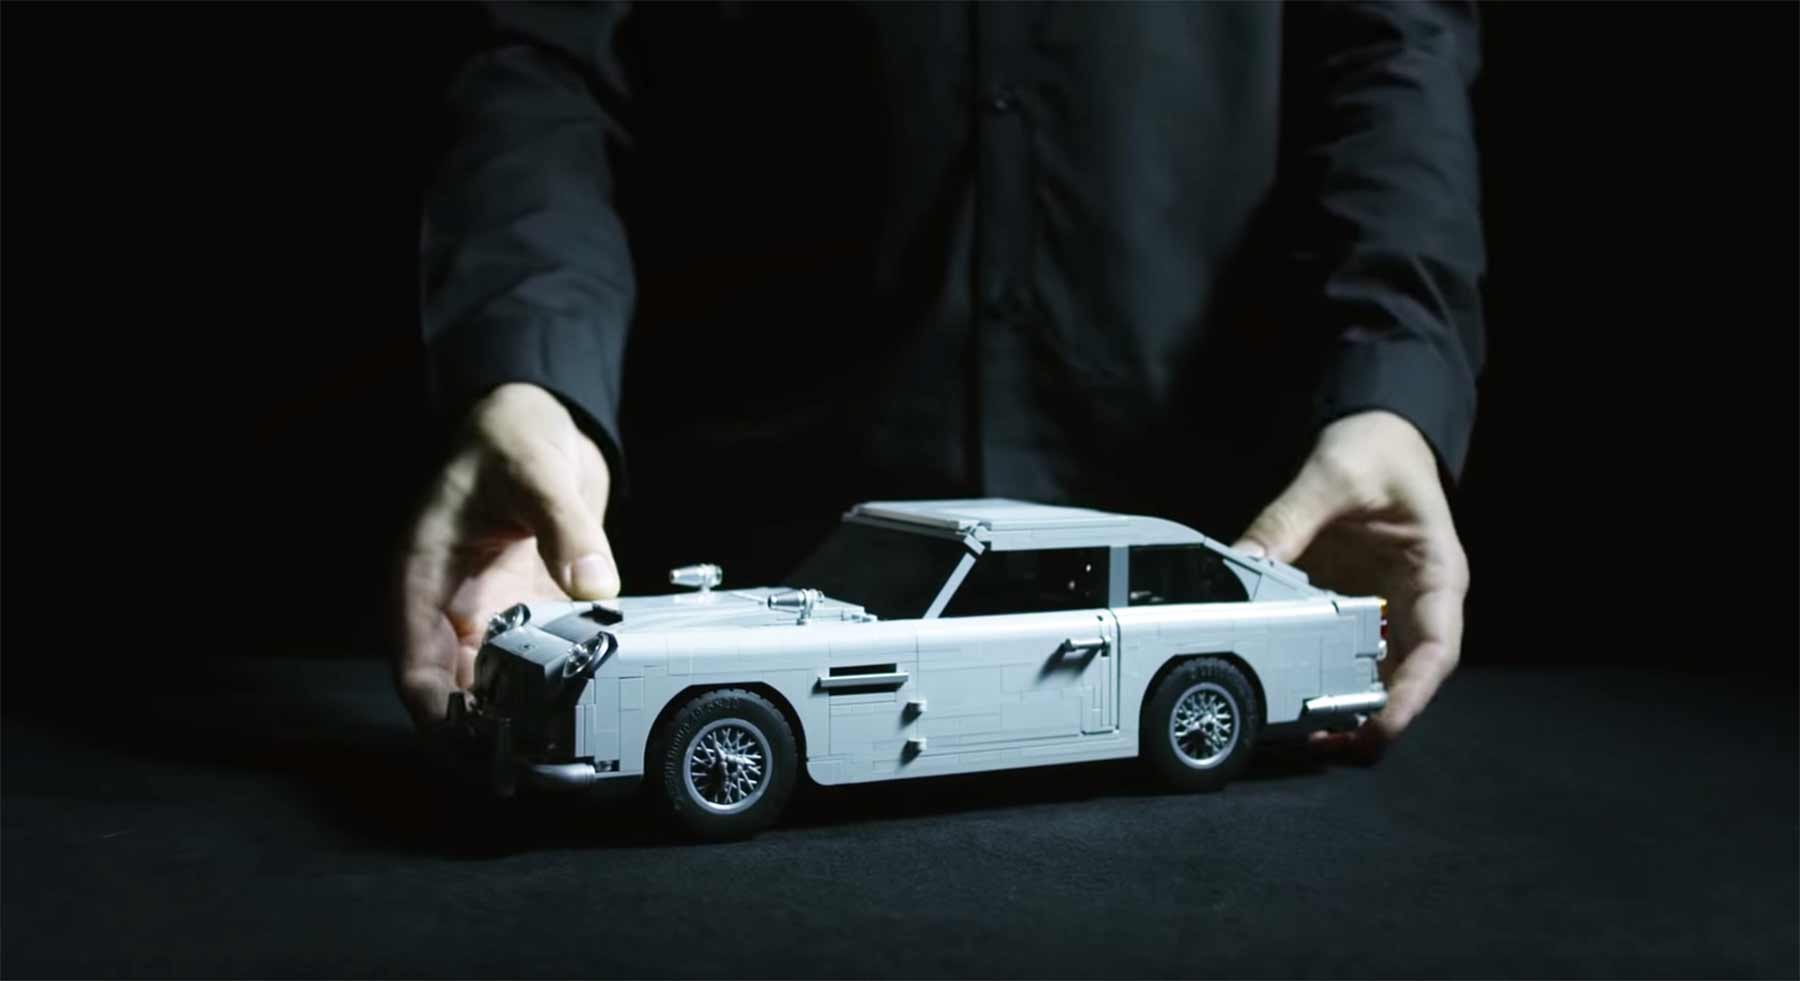 James Bonds Aston Martin DB5 als LEGO-Modell LEGO-Aston-Martin-DB5-James-Bond-007